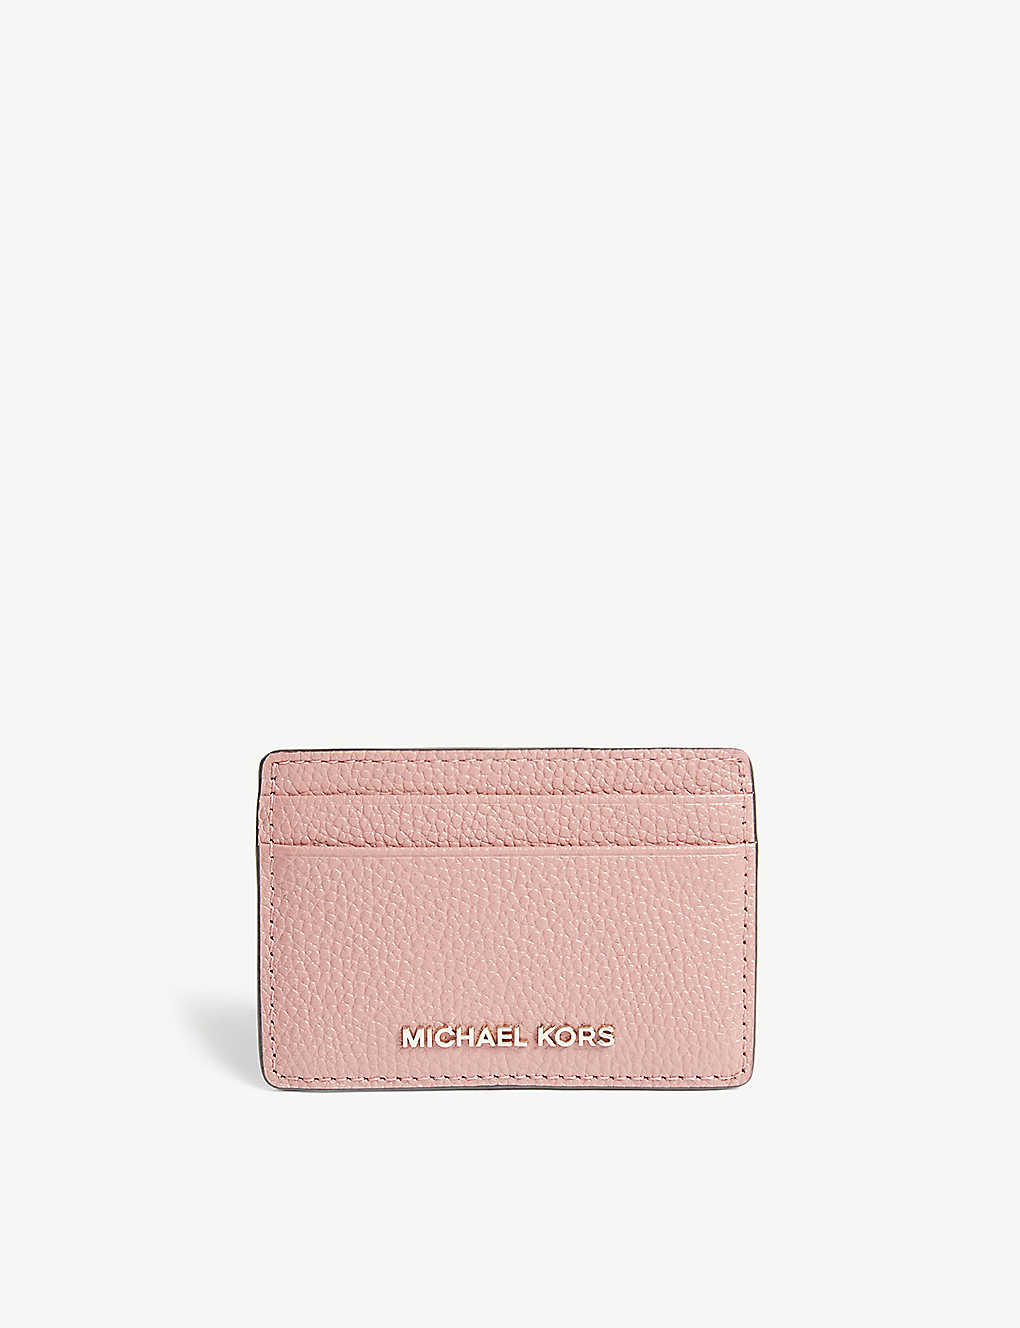 6b7fddbcb517 MICHAEL MICHAEL KORS - Pebbled leather card holder | Selfridges.com